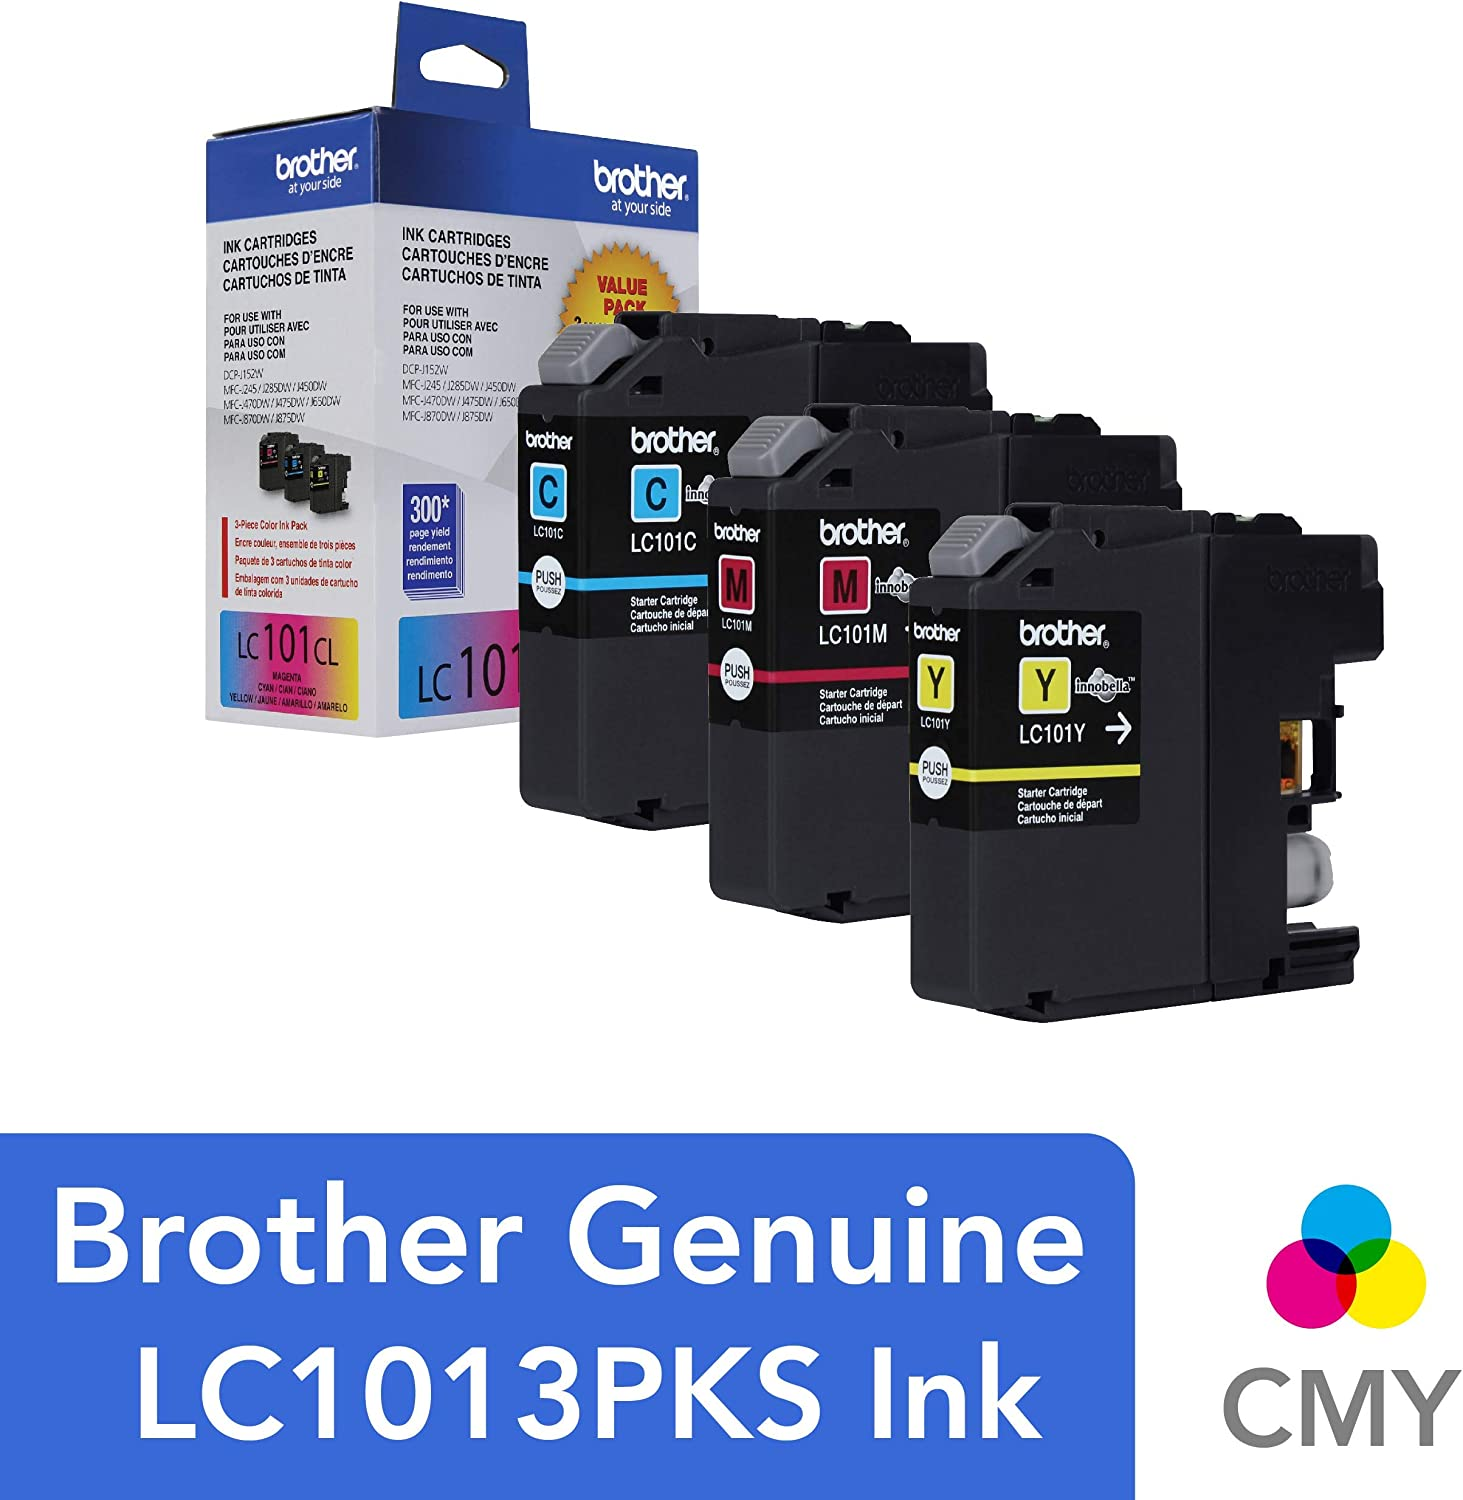 Brother Genuine Standard Yield Color Ink Cartridges, LC1013PKS, Replacement Color Ink Three Pack, Includes 1 Cartridge Each of Cyan, Magenta & Yellow, ...